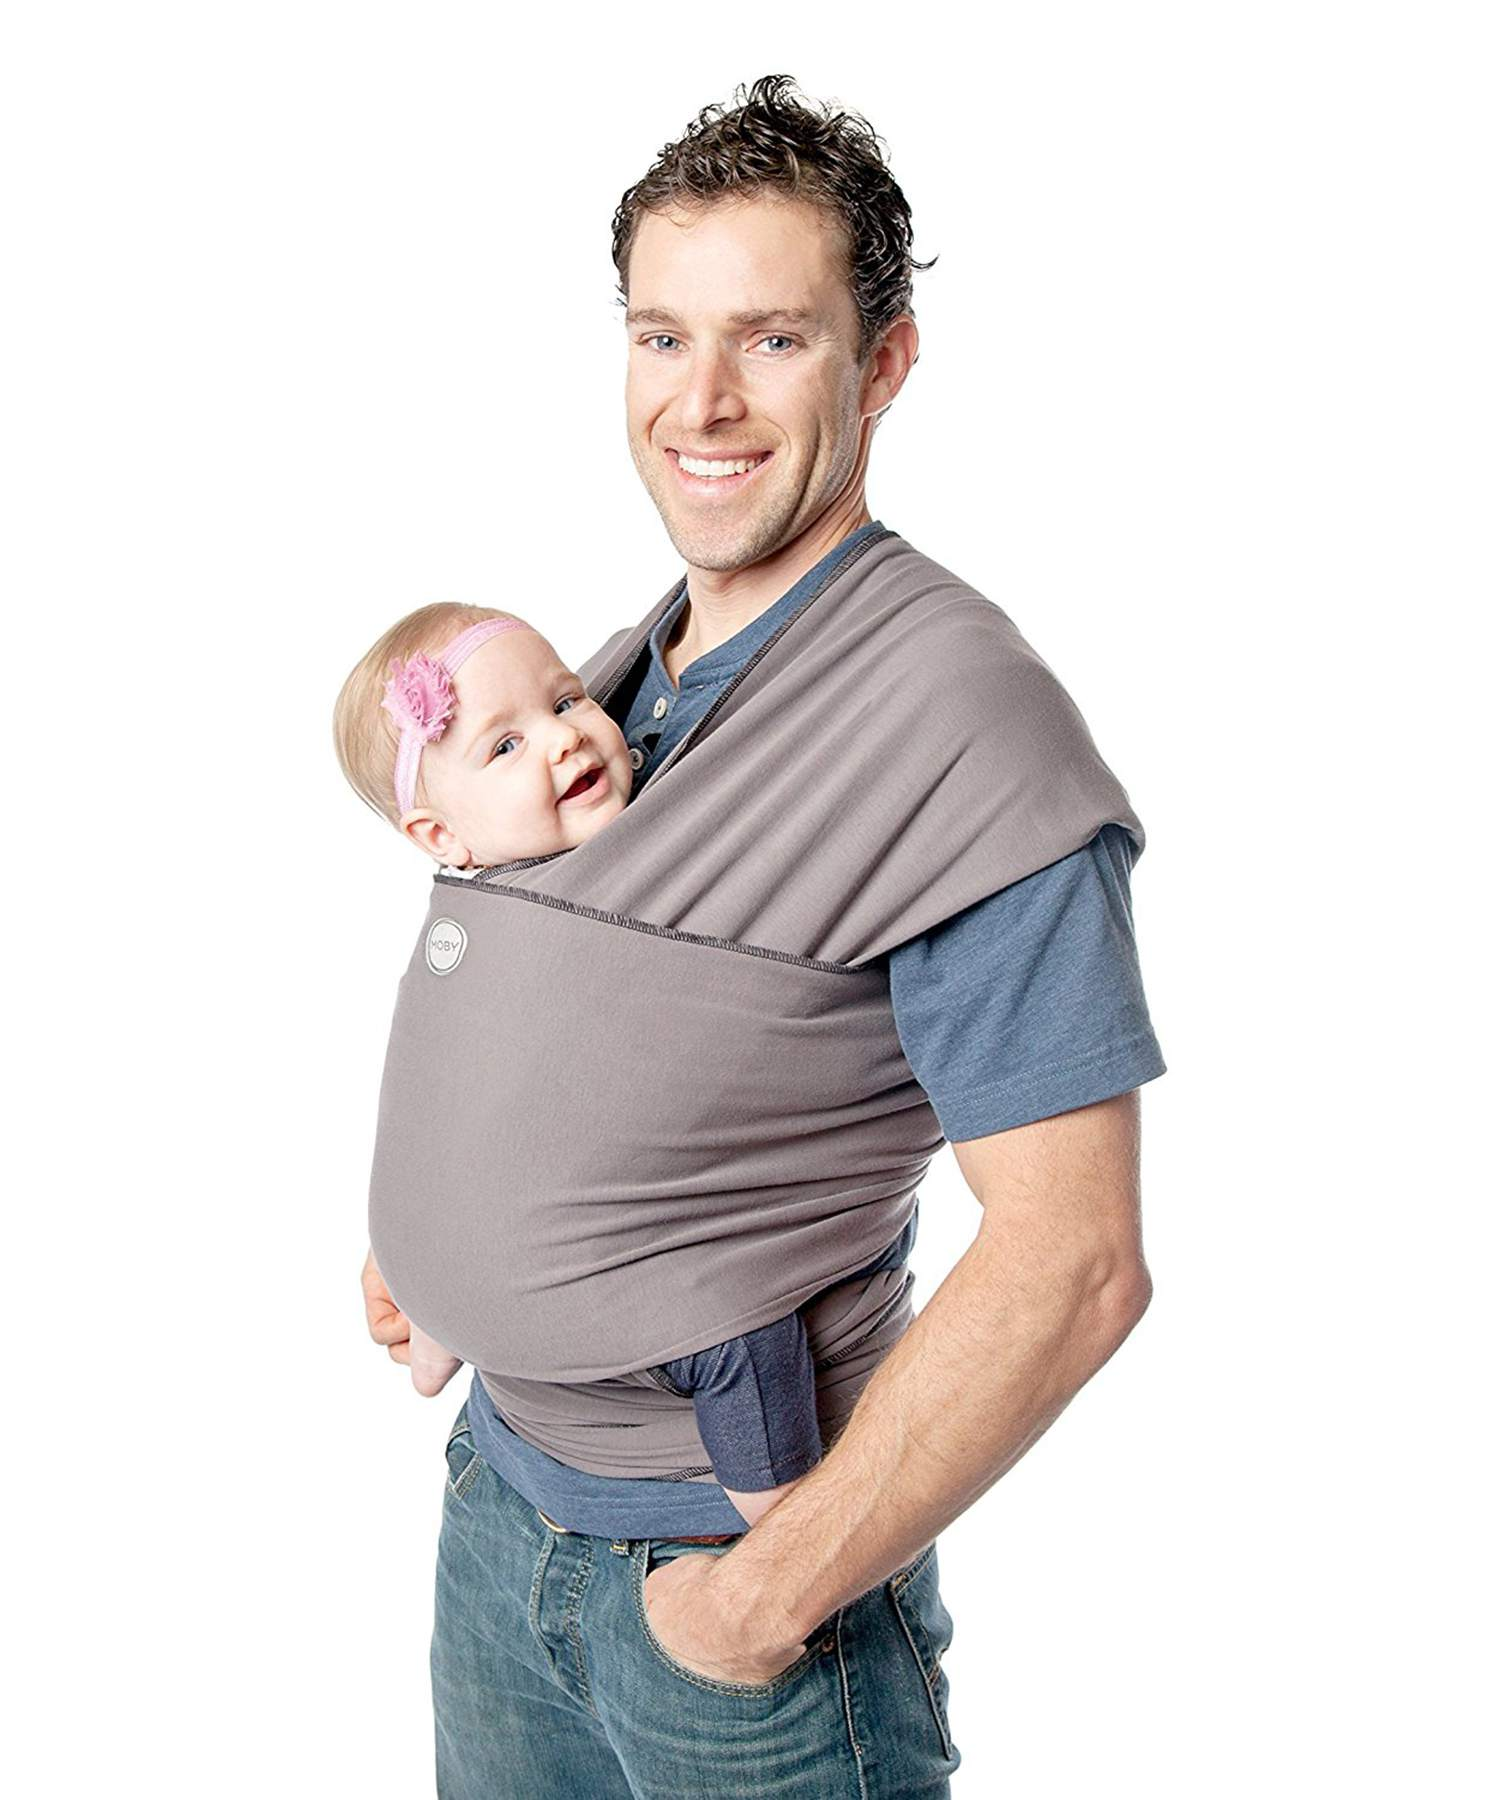 The 5 Best Baby Carriers for Fathers to Buy in 2018